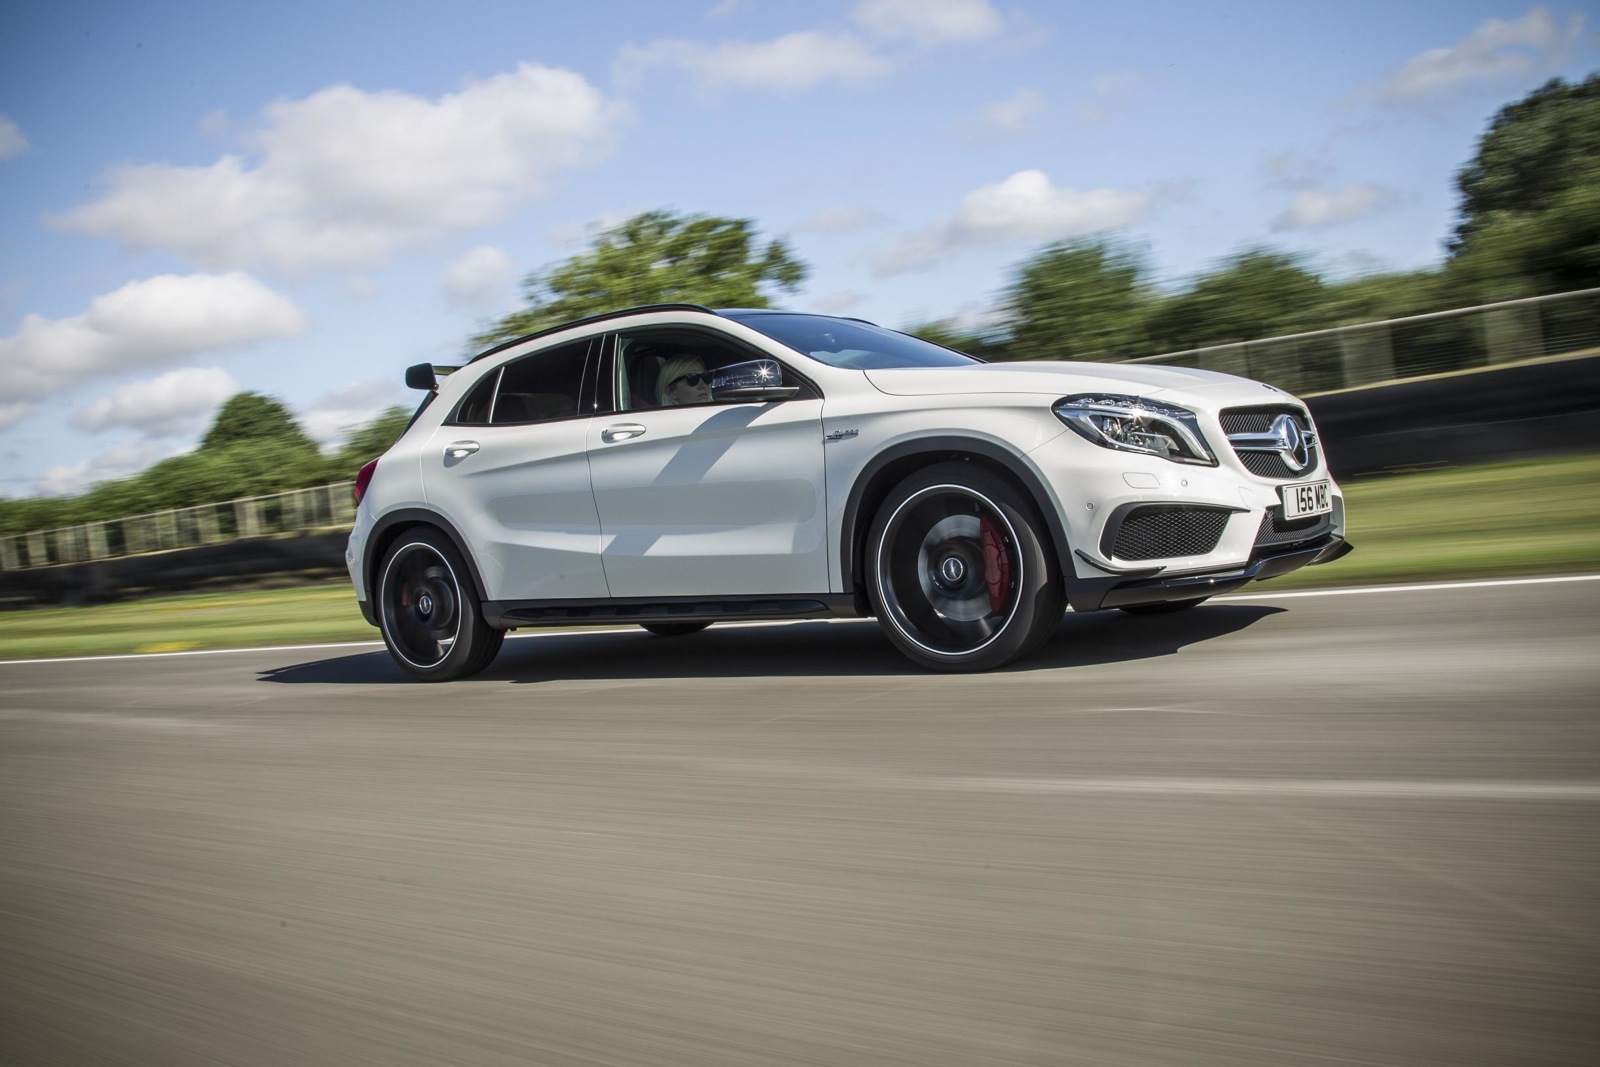 Mercedes benz gla 45 amg with aero kit performancedrive for Mercedes benz gla 45 amg for sale